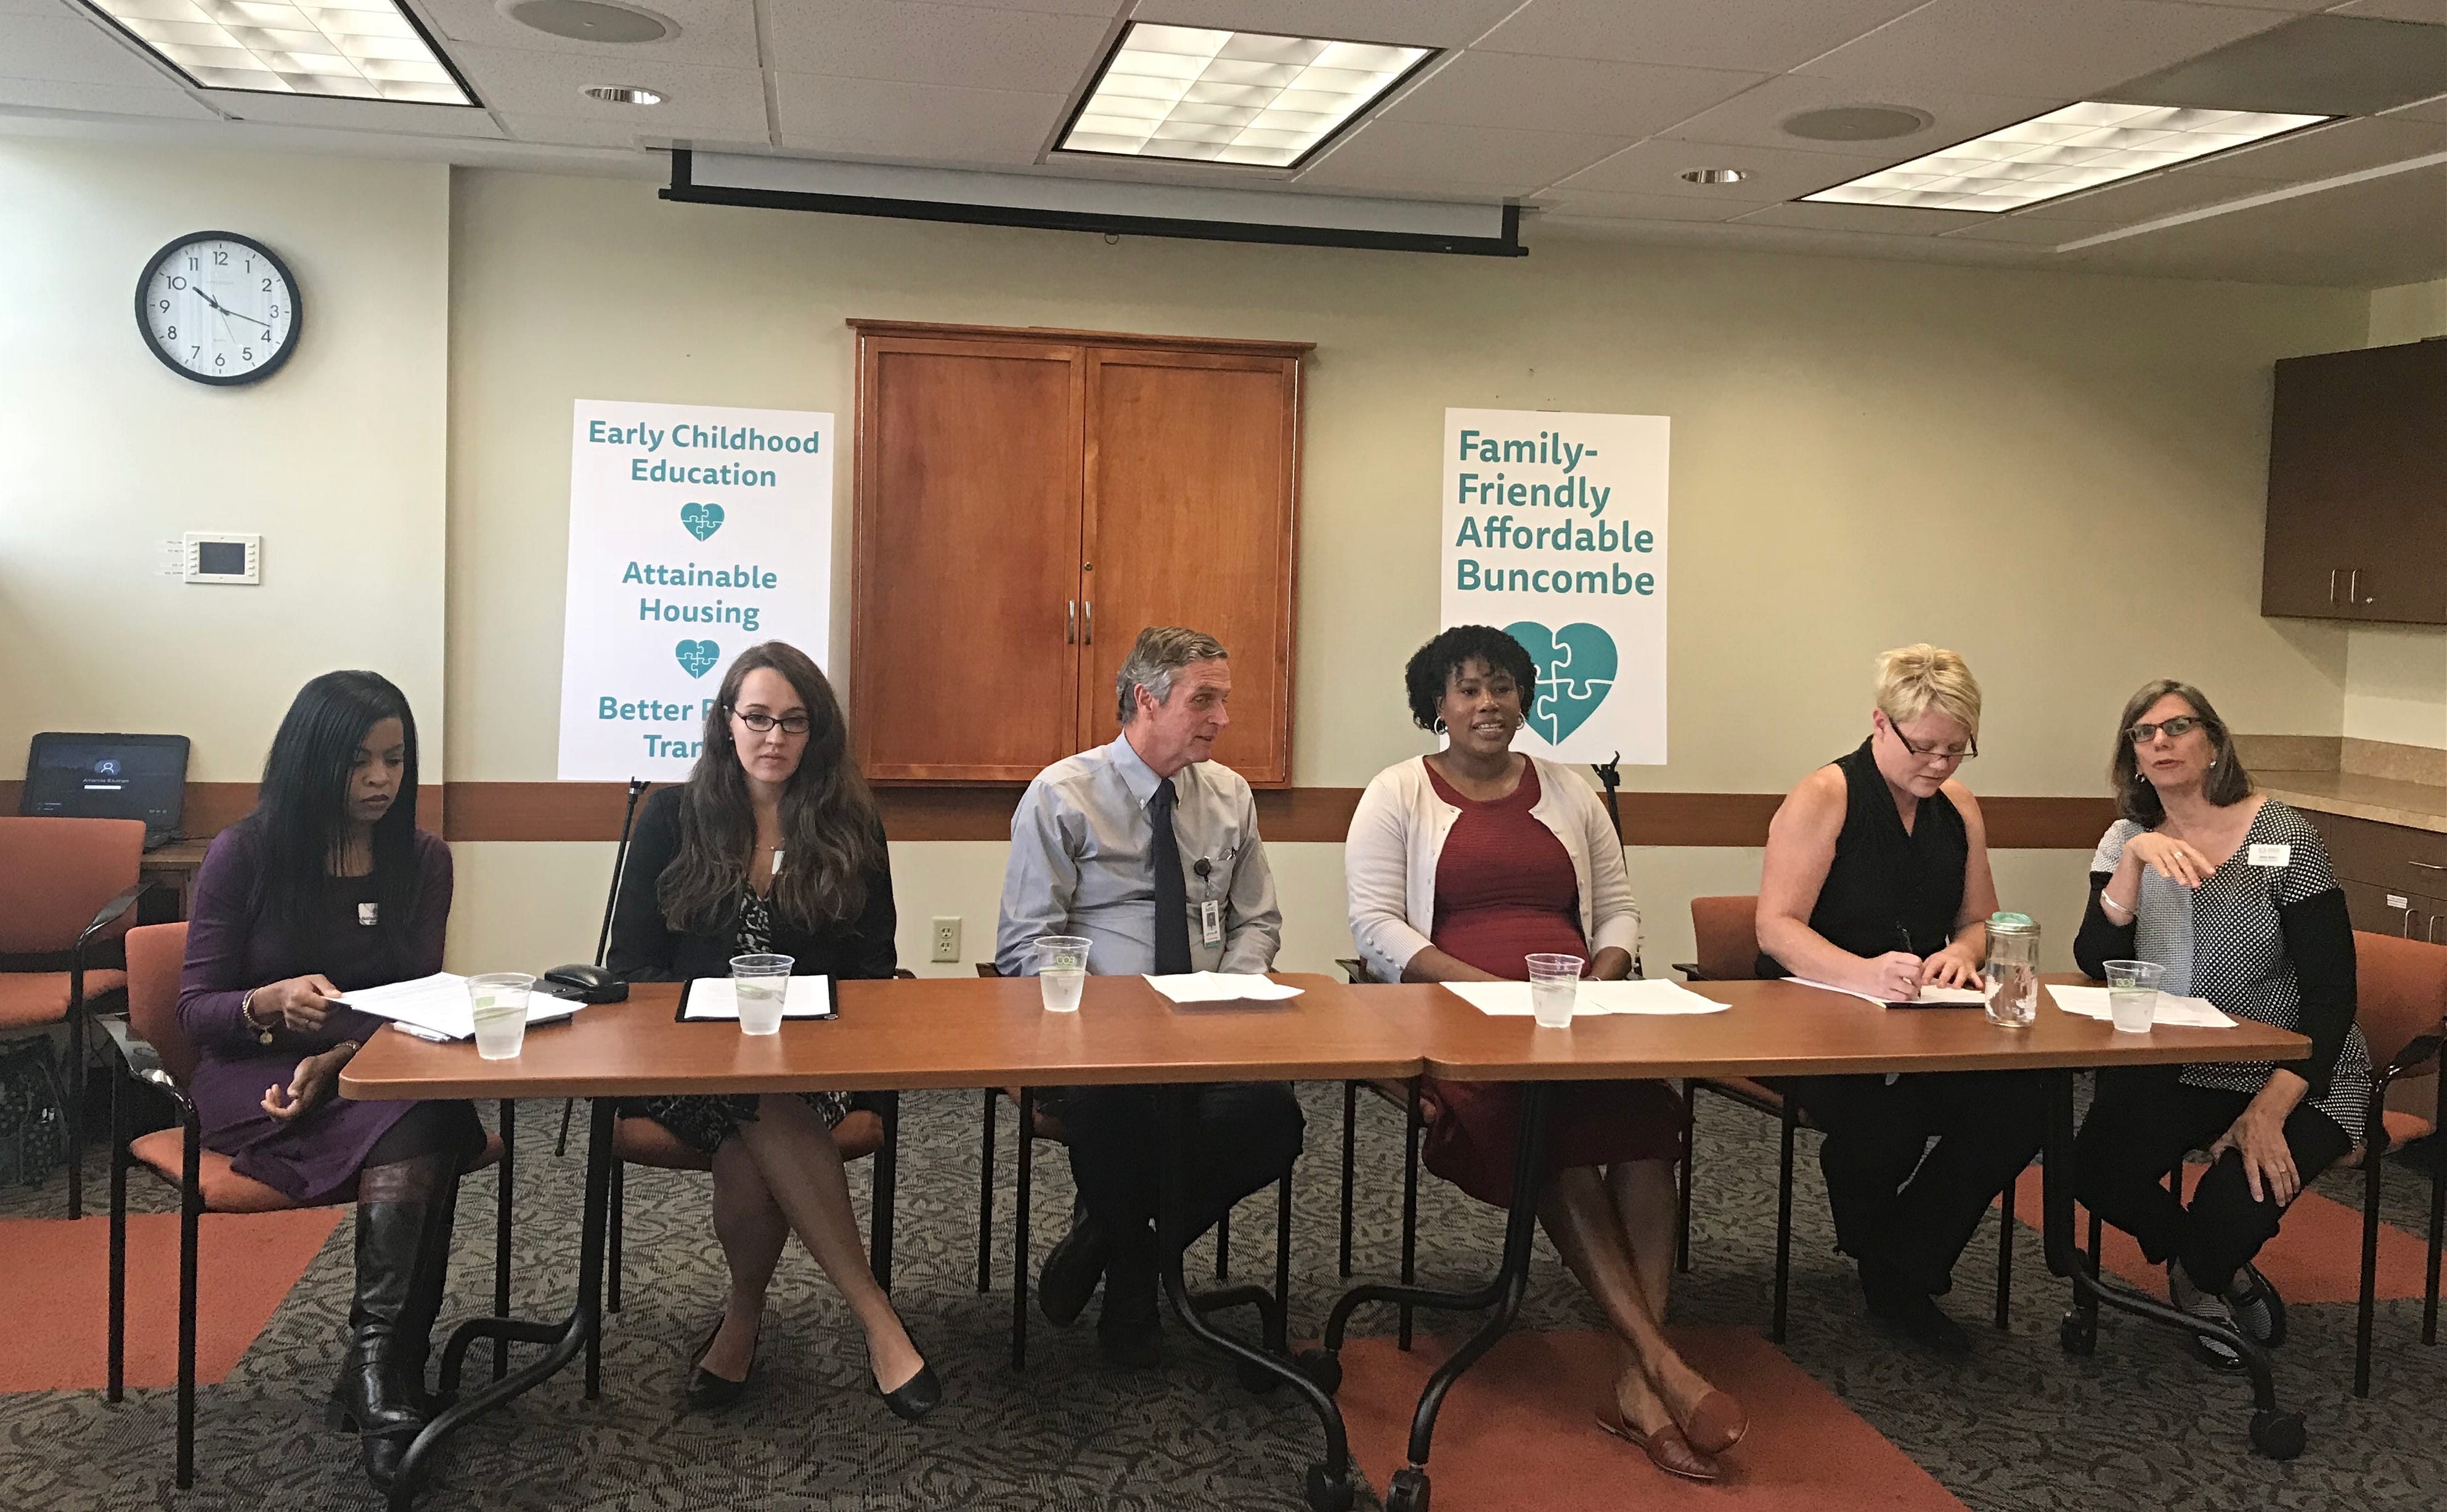 From left: Natasha Adwaters, executive director of Children First/Communities in Schools; Kaitlyn Guyer, enrollment coordinator at the Verner Center of Early Learning; MAHEC President and CEO Dr. Jeff Heck; Ebony Grayson Reece, an Asheville City Schools substitute teacher; Asheville resident Rachelle Sorensen-Cox; and Amy Barry, executive director of Buncombe Partnership for Children. The group advocated Monday Oct. 15 for funding for the newly formed Family-Friendly Affordable Buncombe initiative.